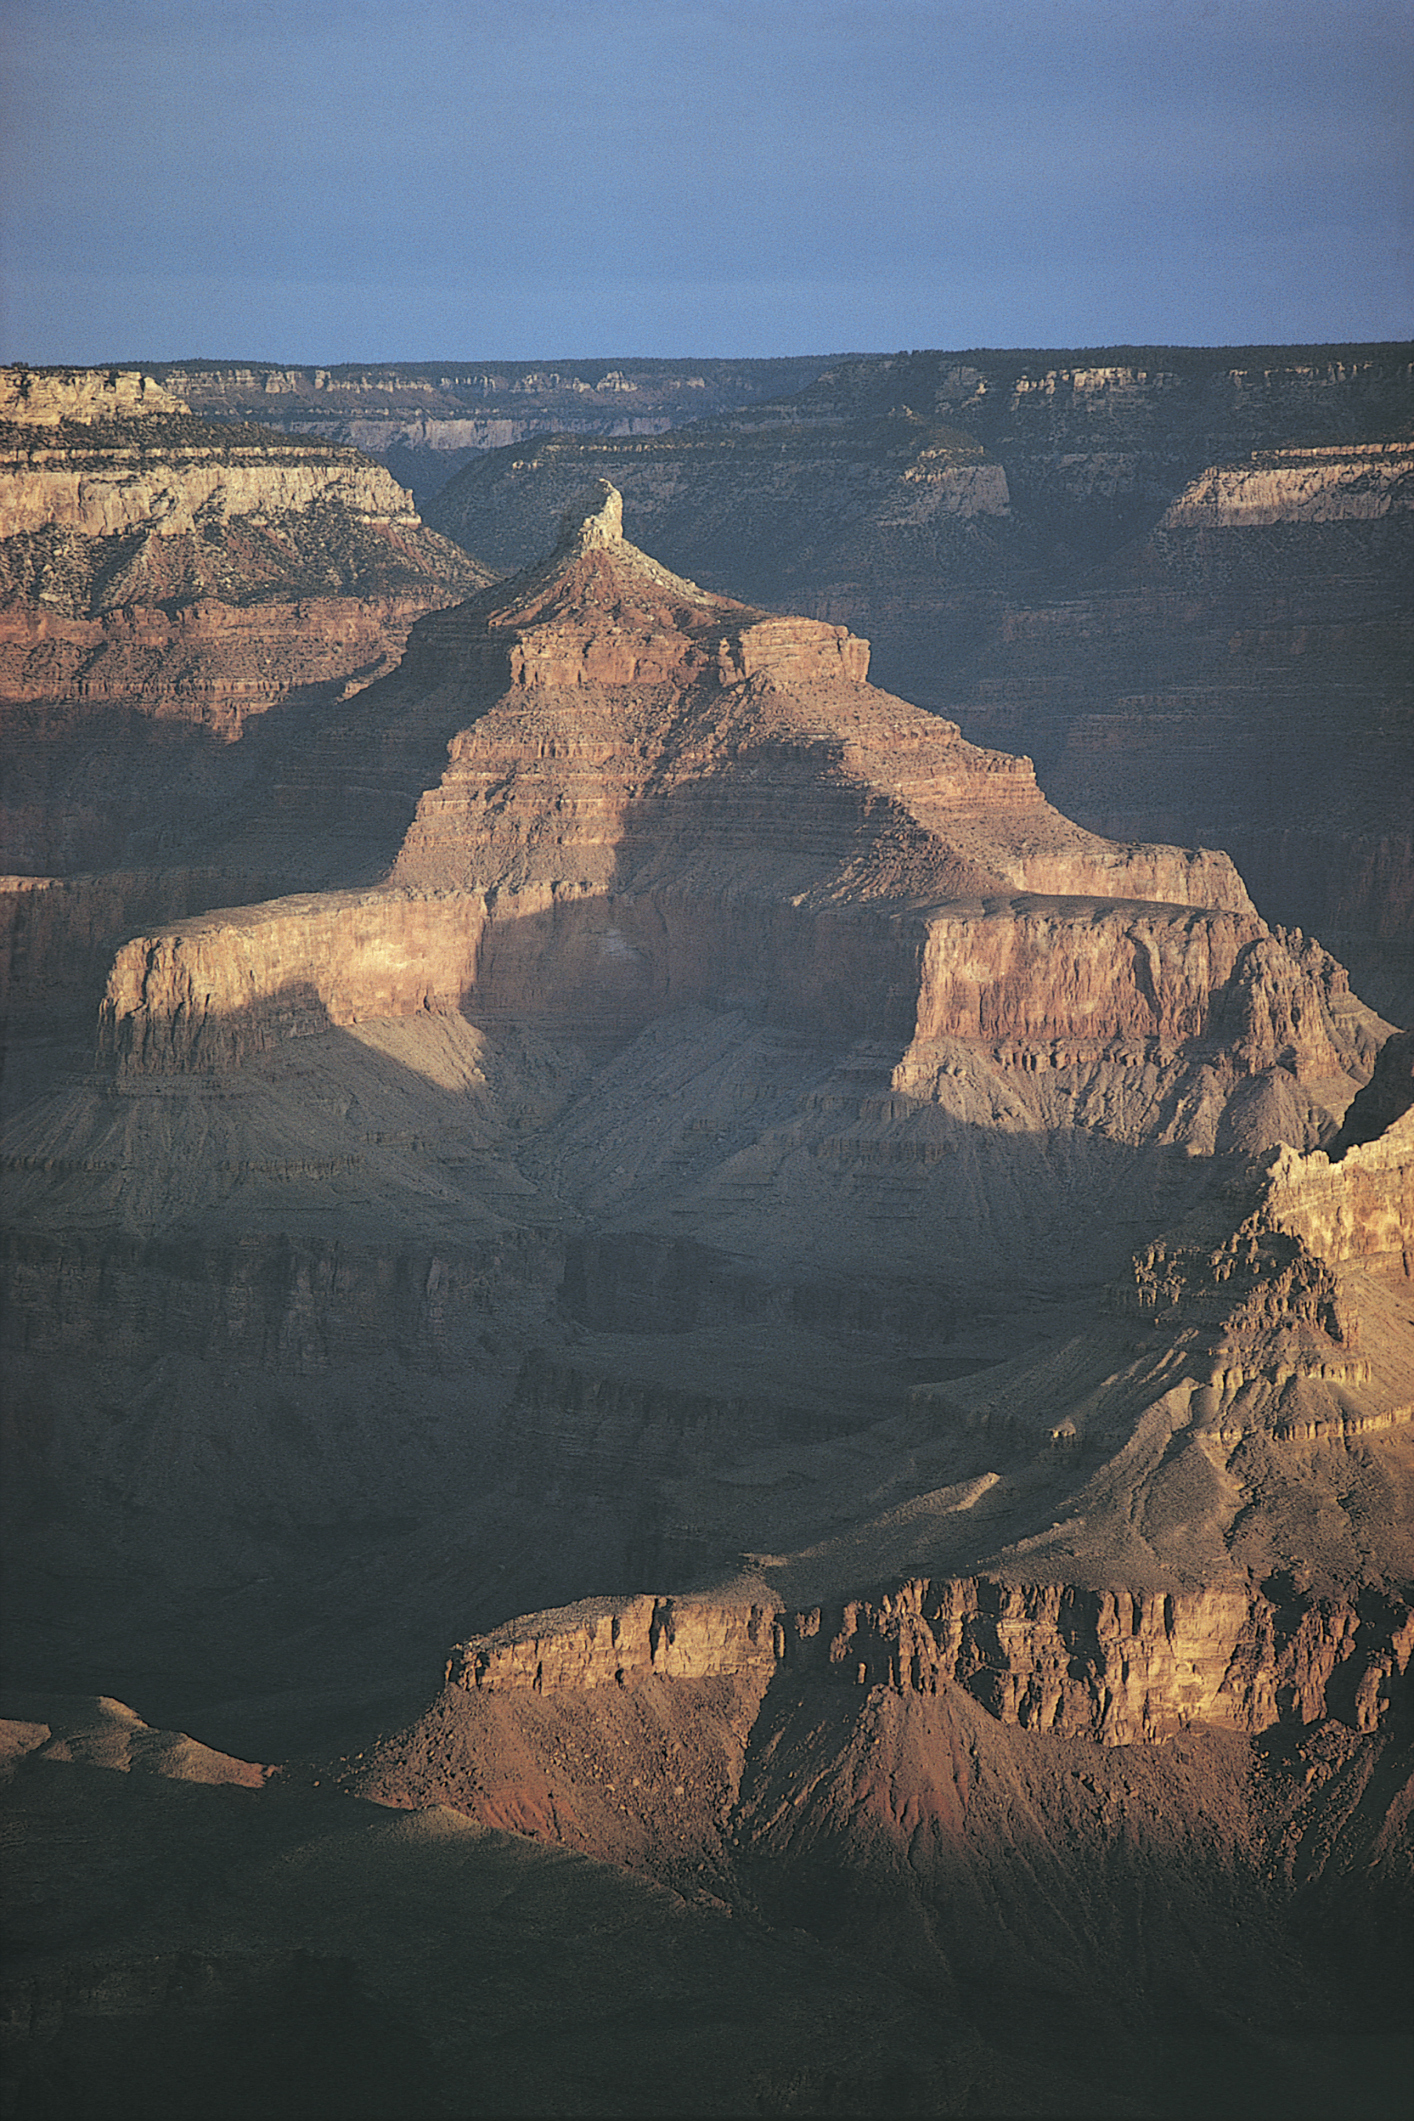 What States Does the Grand Canyon Touch?